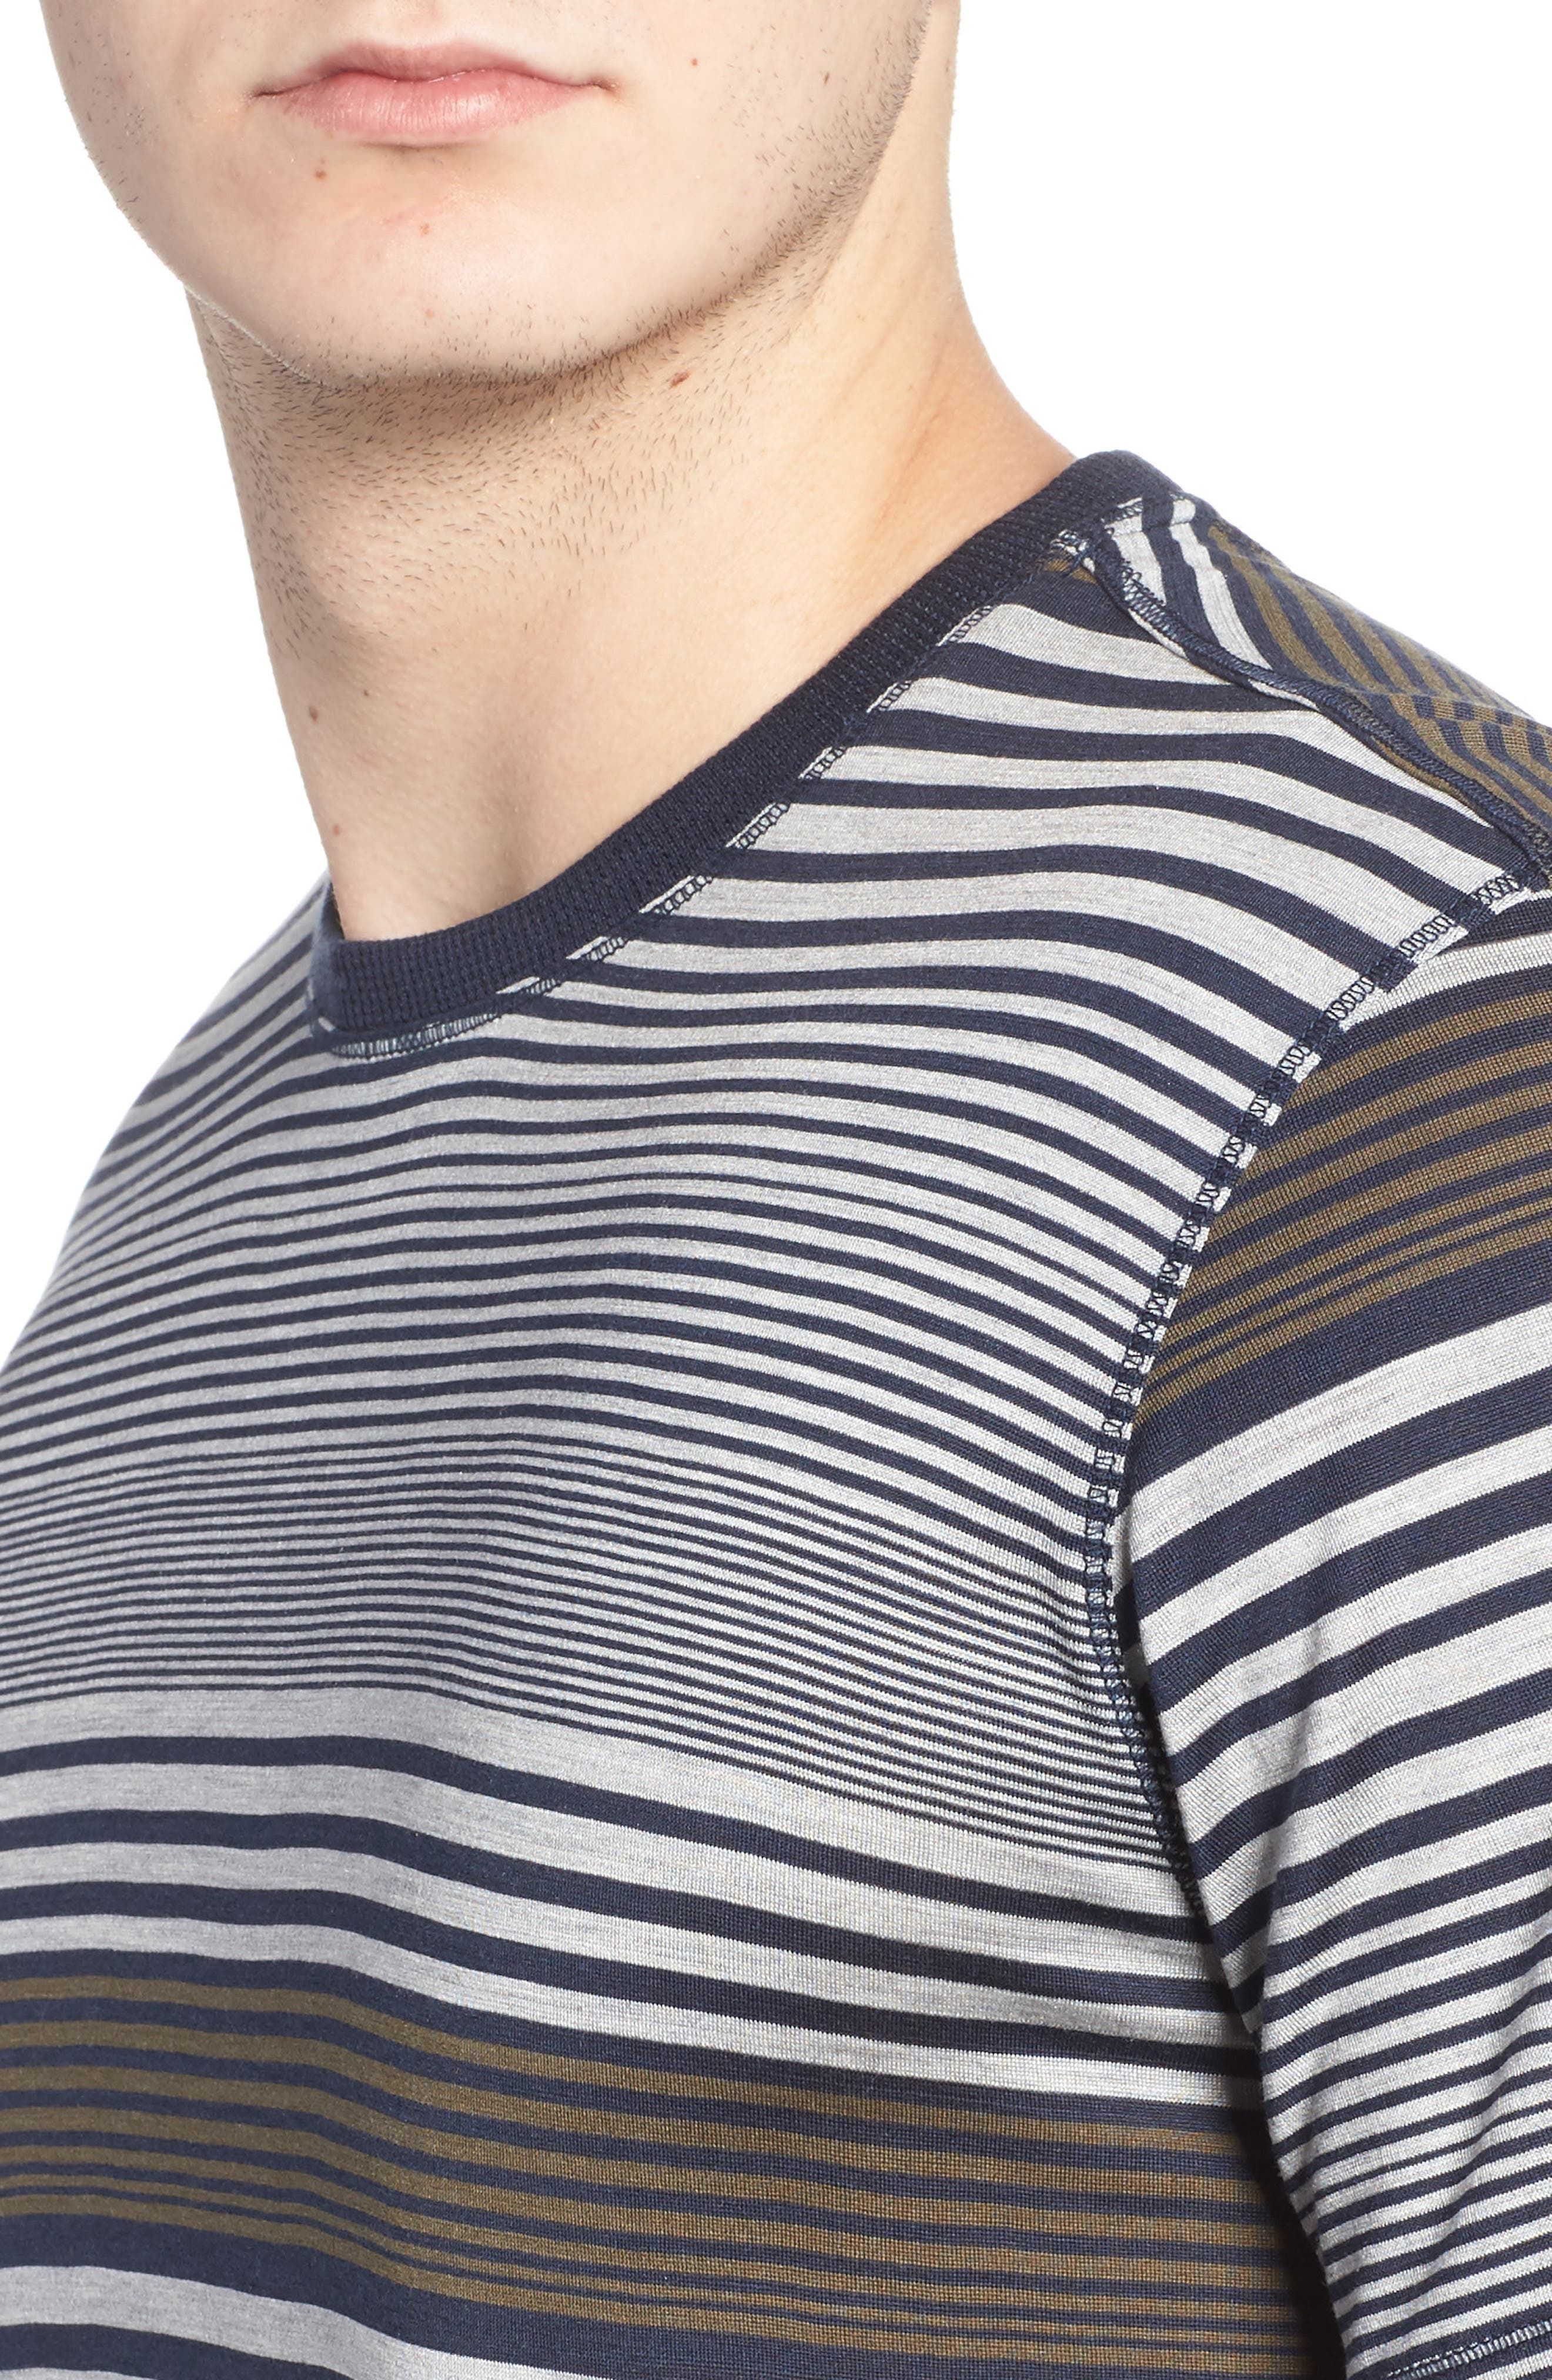 Stripe Silk & Cotton T-Shirt,                             Alternate thumbnail 4, color,                             Midnight/ Grey/ Army